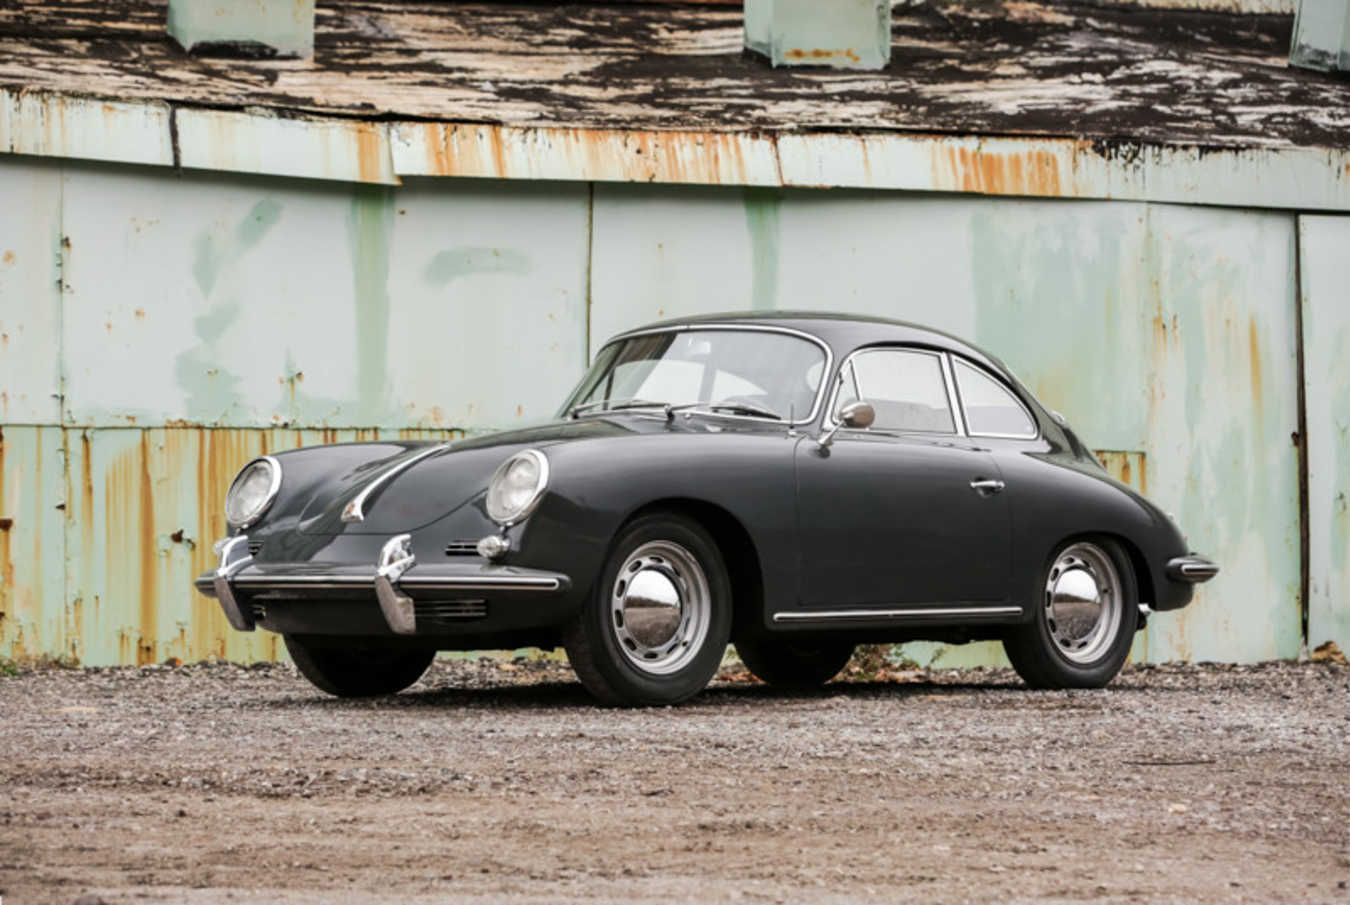 Car Porn: 1963 Porsche 356B Coupe. Classic and cool.